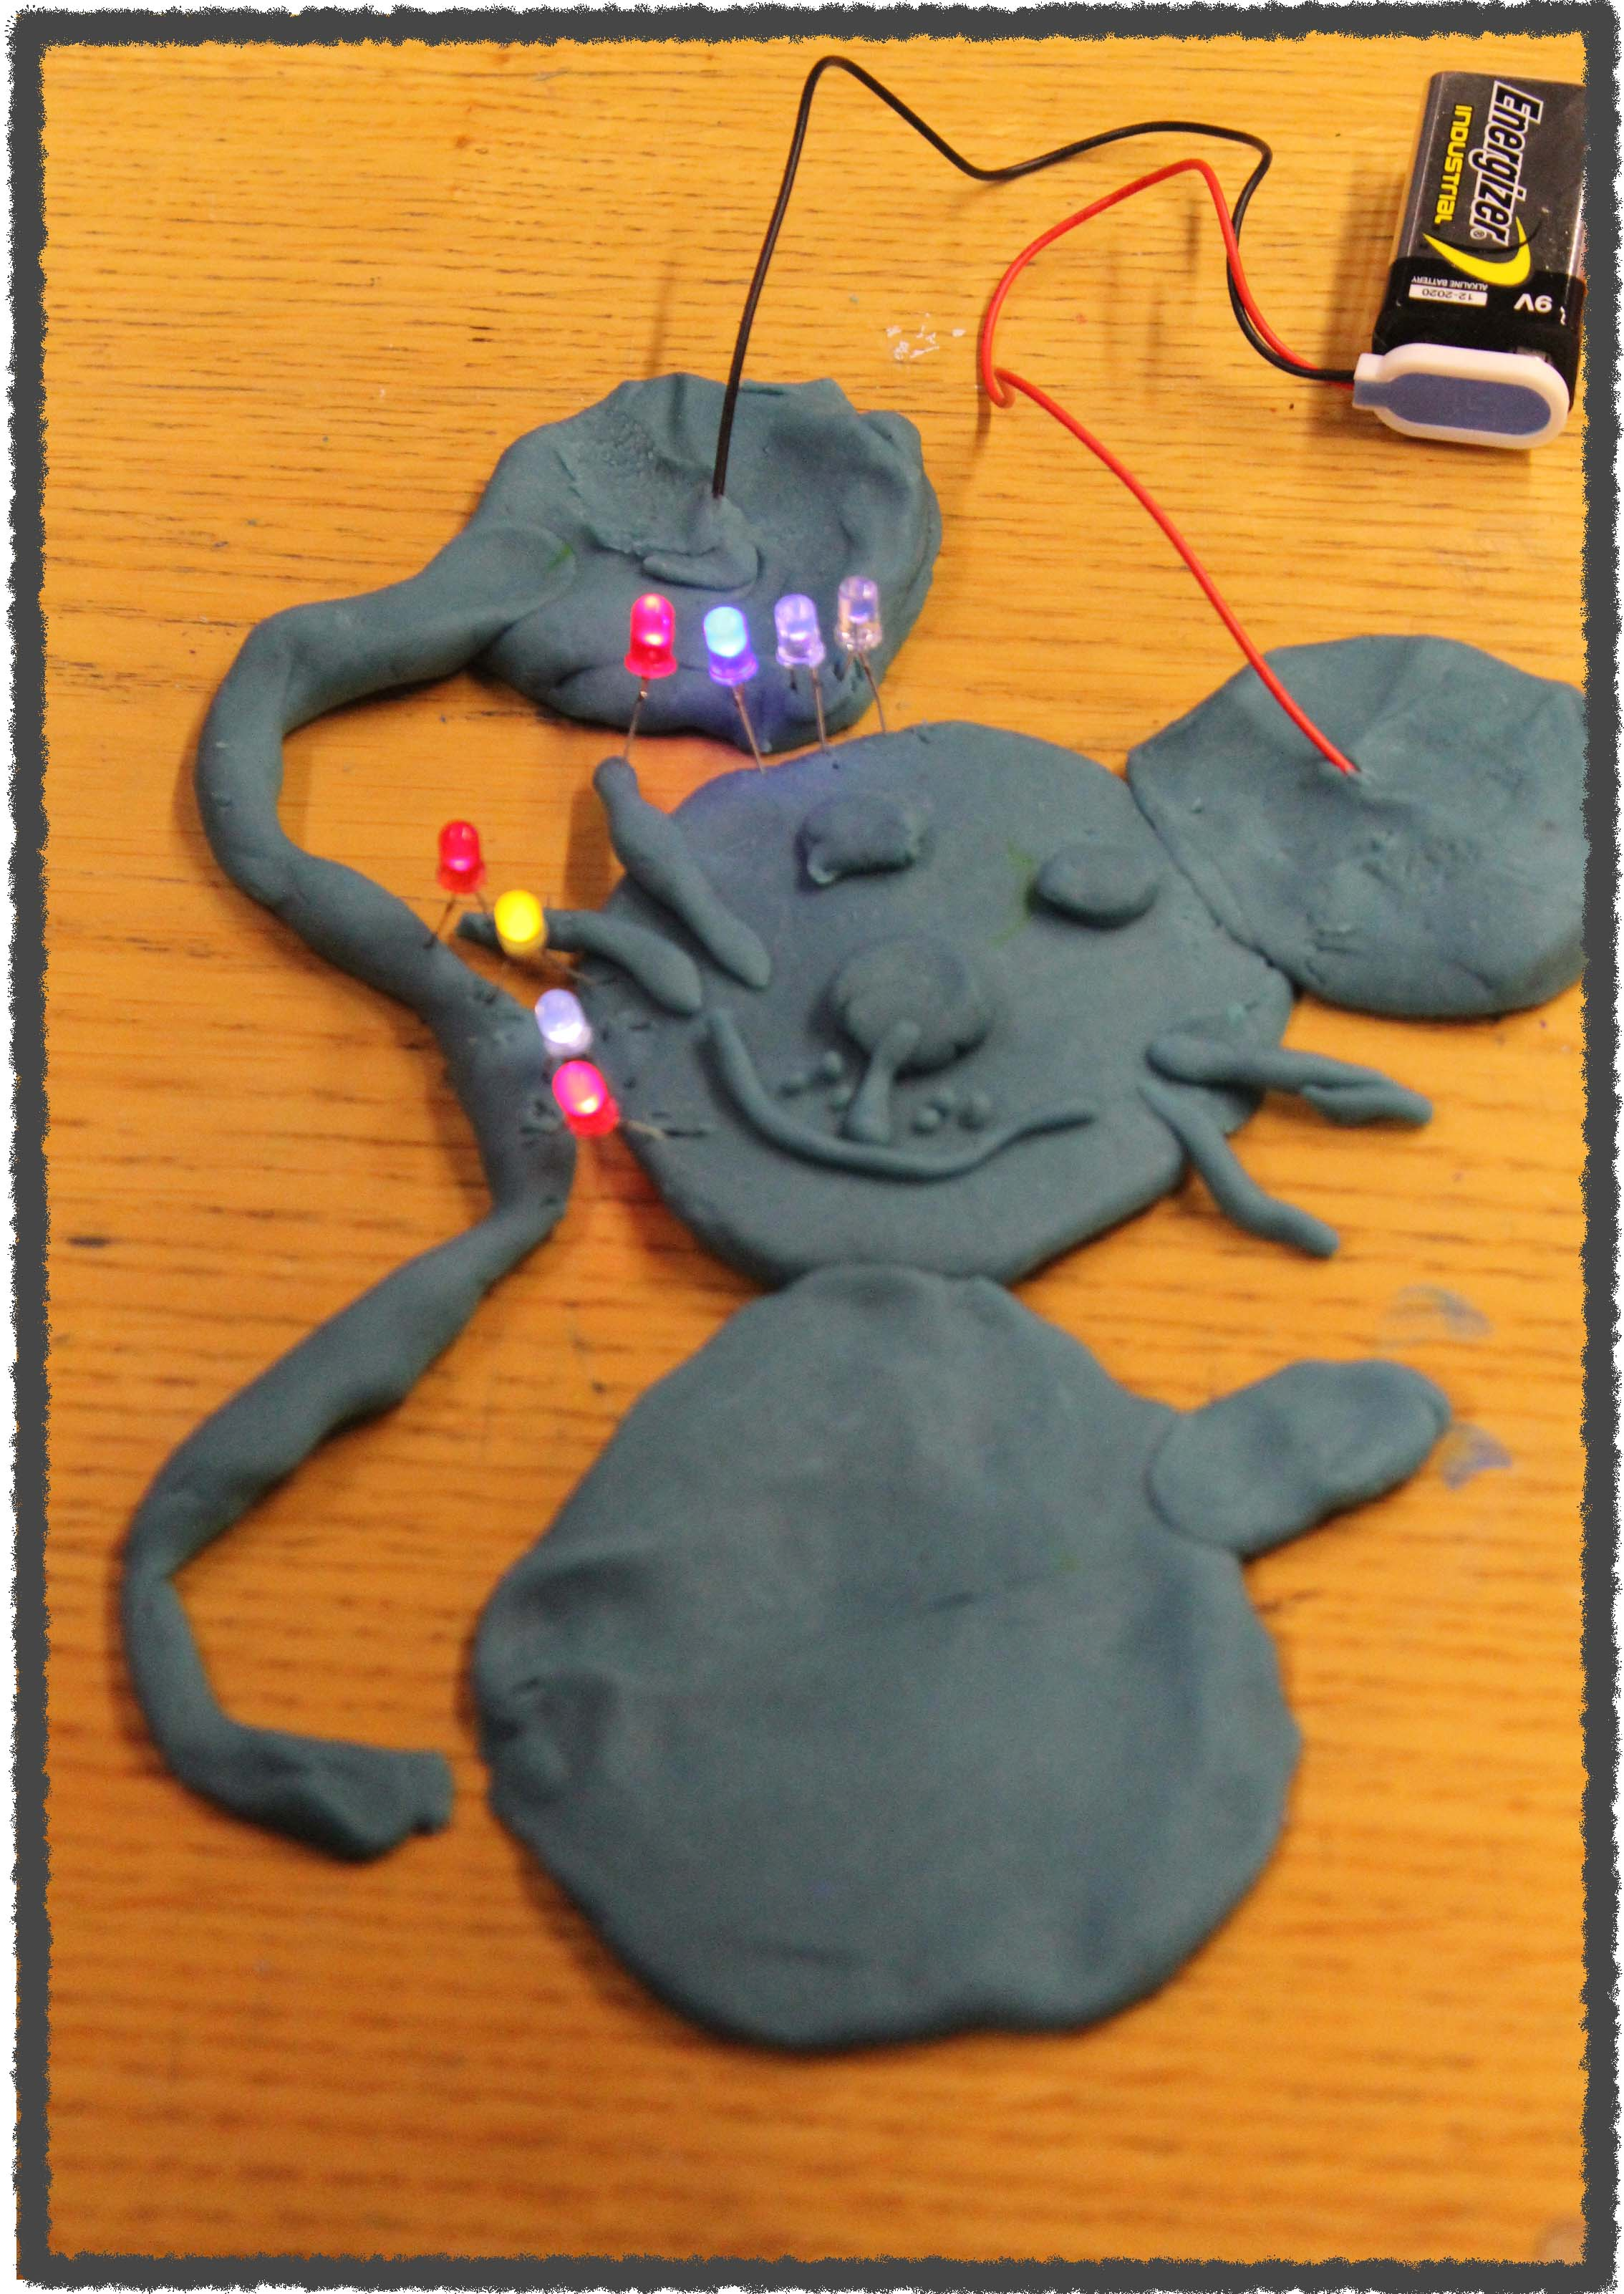 STEAM Education: Explore circuit building with conductive clay and LEDs